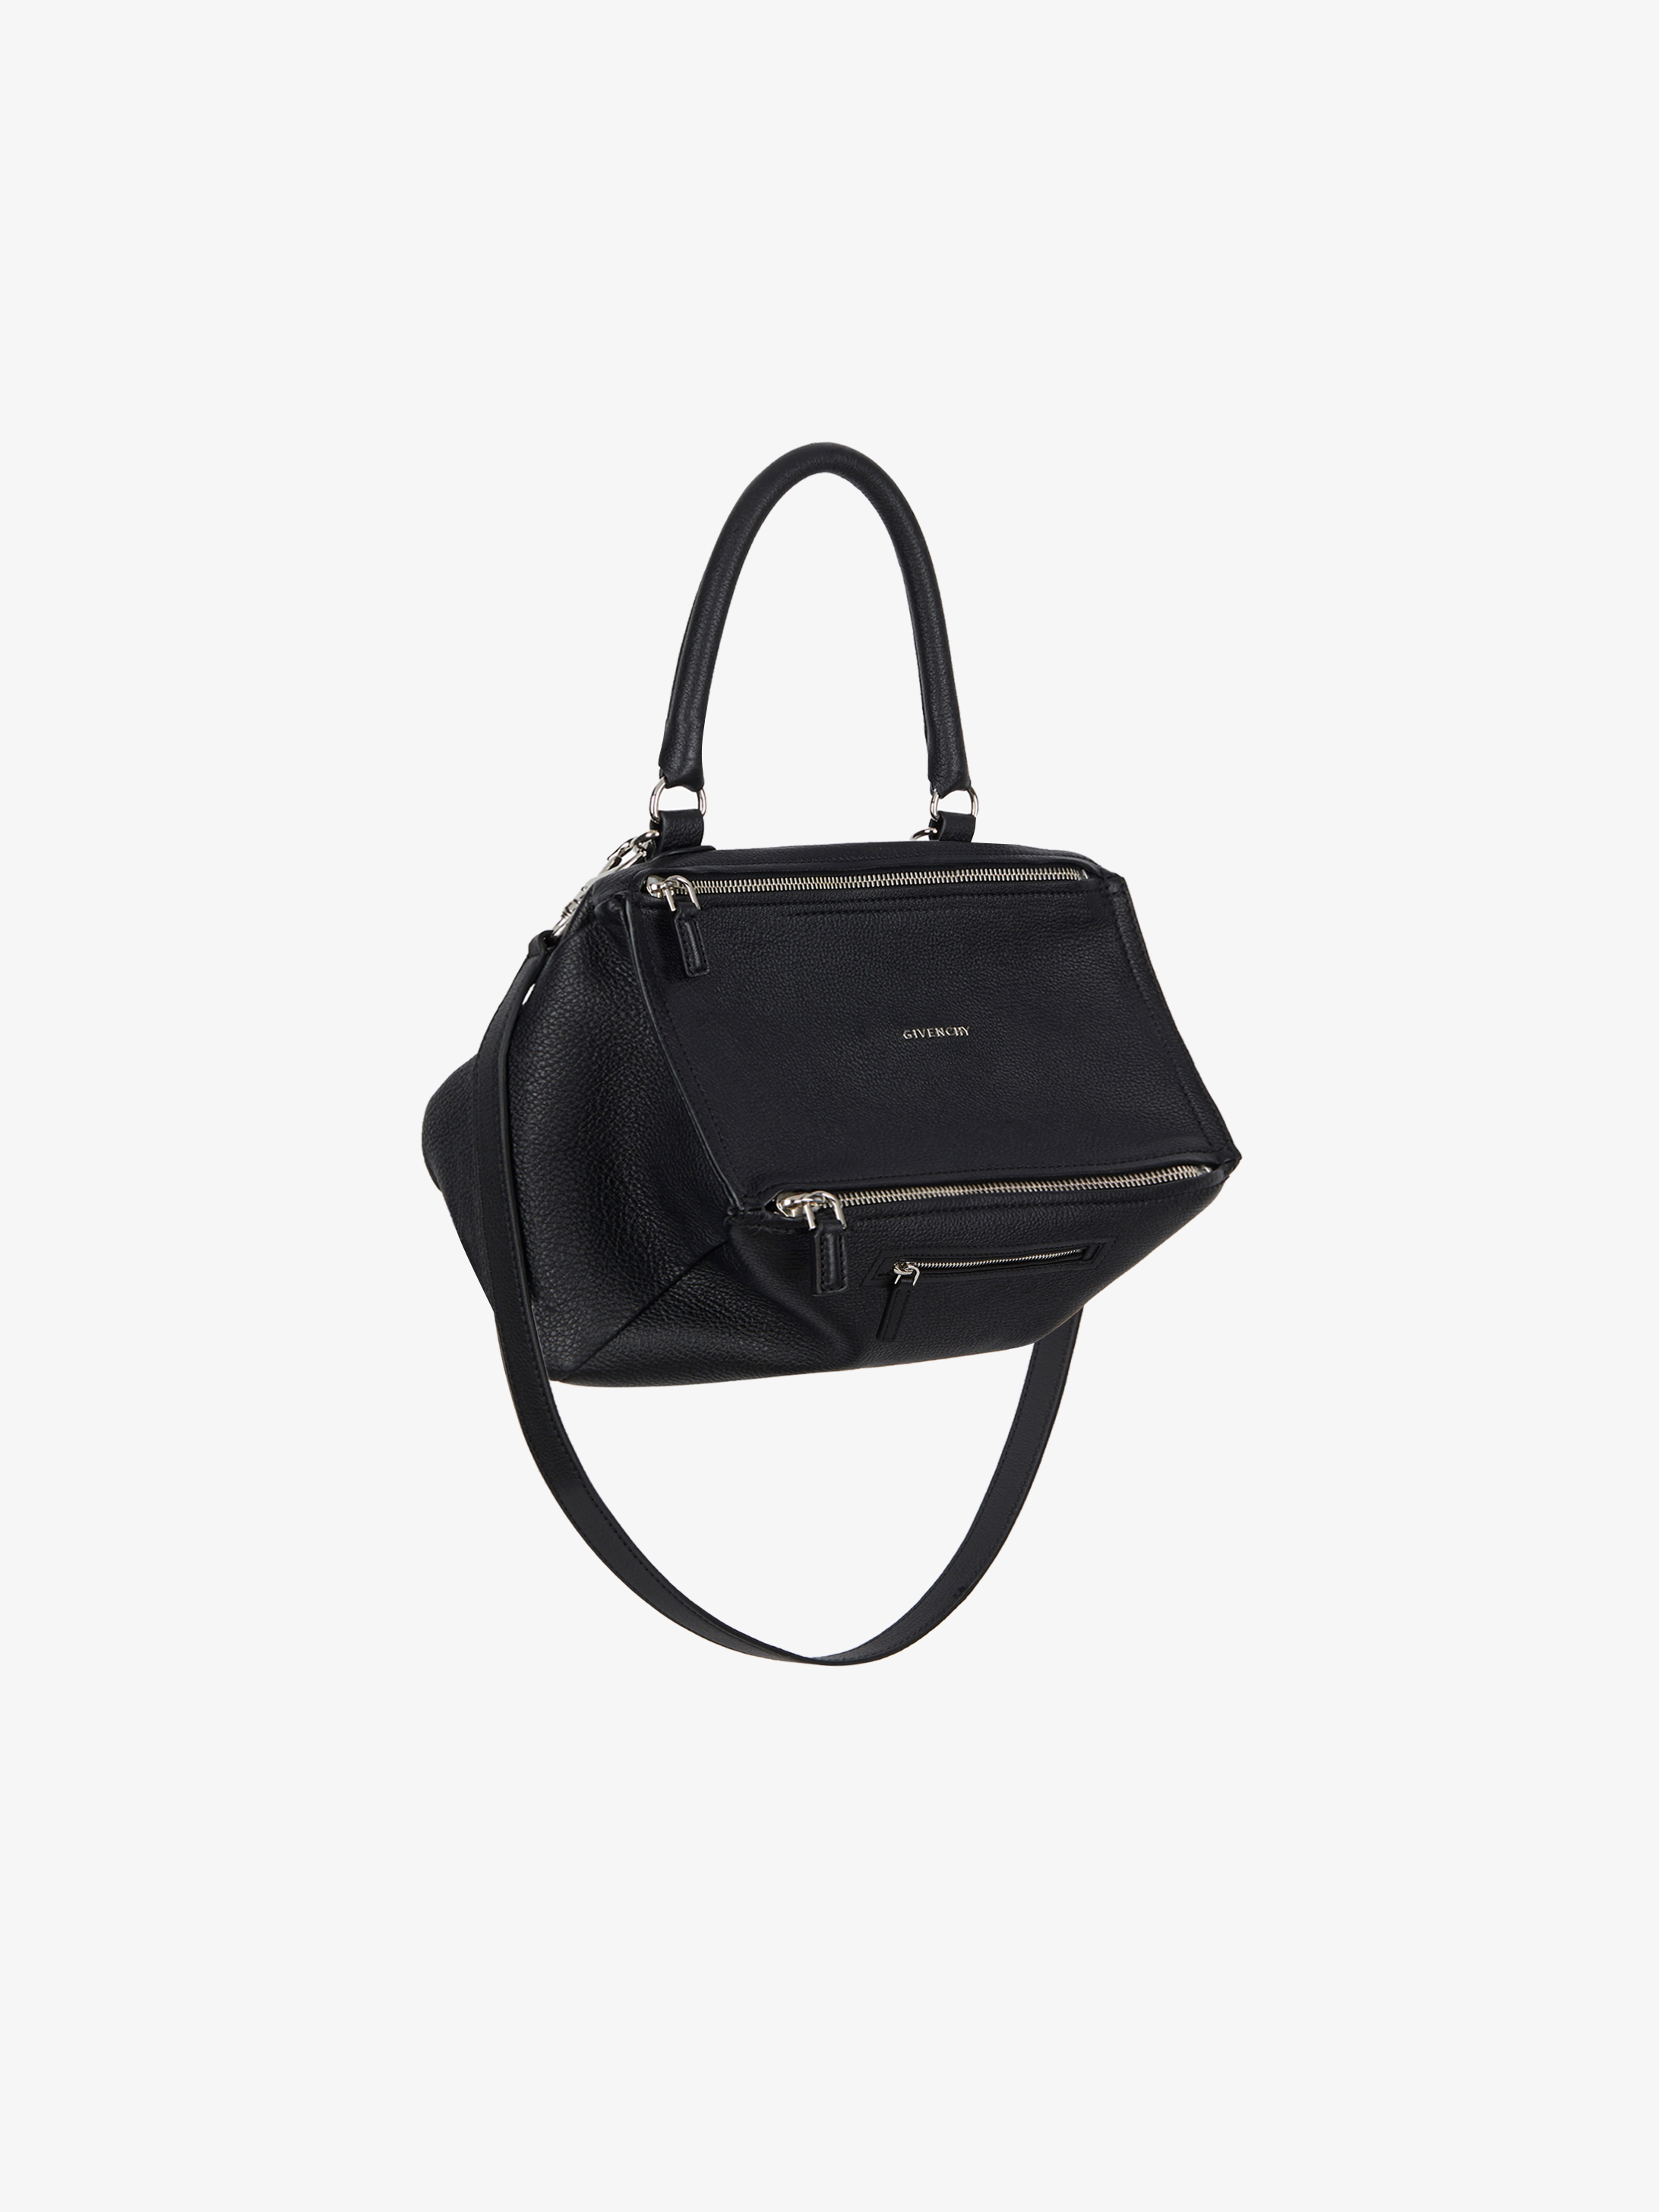 Medium Pandora bag in grained leather